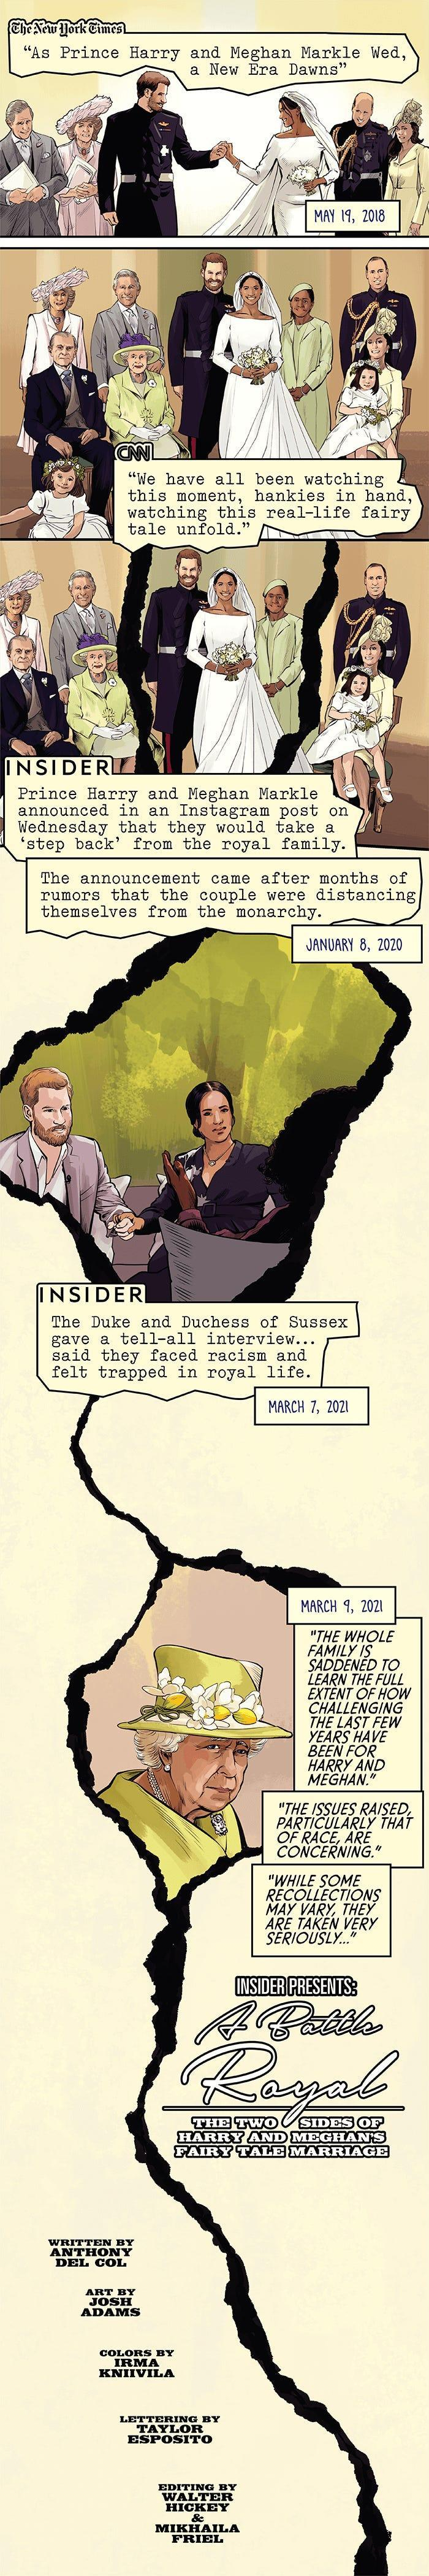 Page one of the story, in which Meghan Markle and Prince Harry are wed. Over the course of the page, the interview with Oprah is revisited, showing that things with the Royal Family have not gone well.